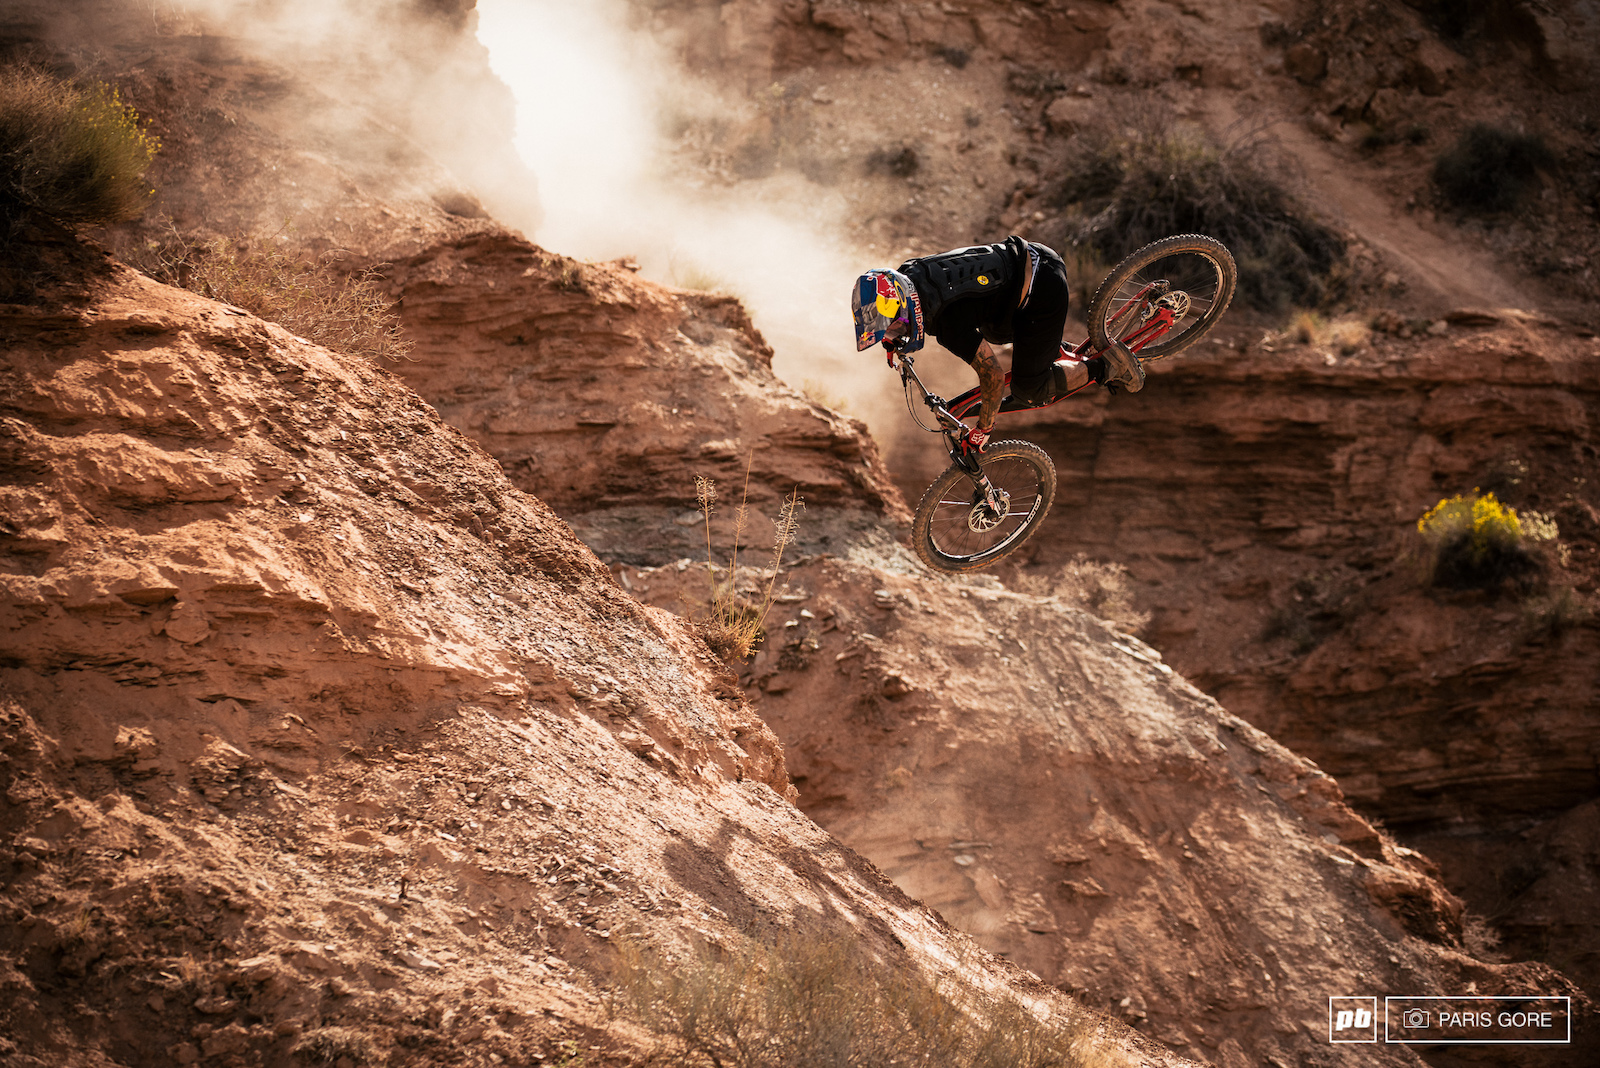 Andreu Lacondeguy spinning halfway down the mountain and into a heavy drop.